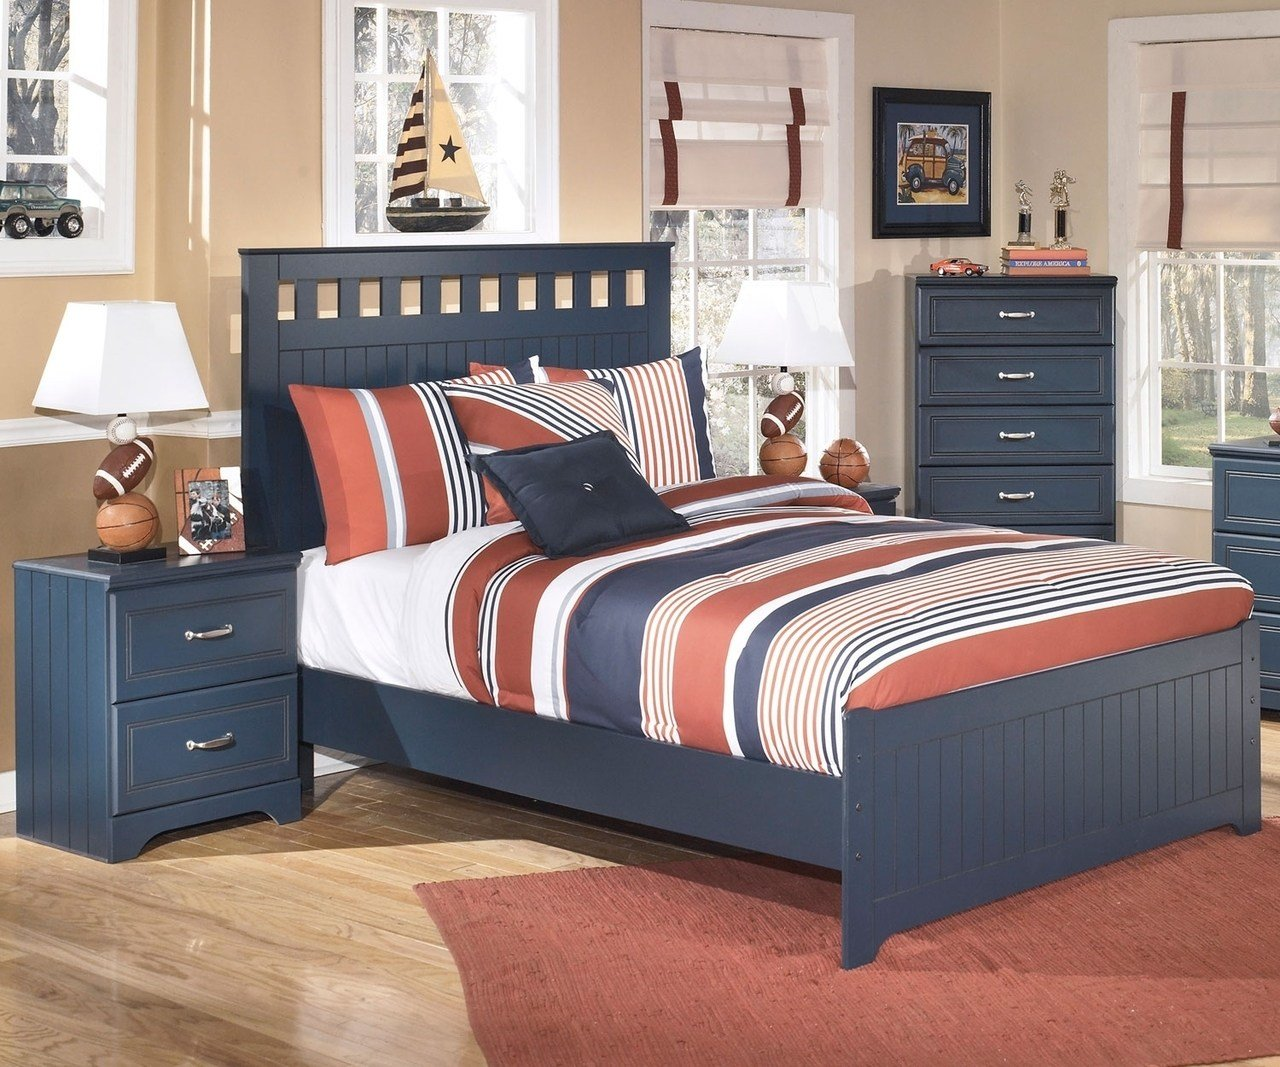 Best Leo B103 Full Size Panel Bed Ashley Kids Furniture Boys Bedroom Furniture With Pictures